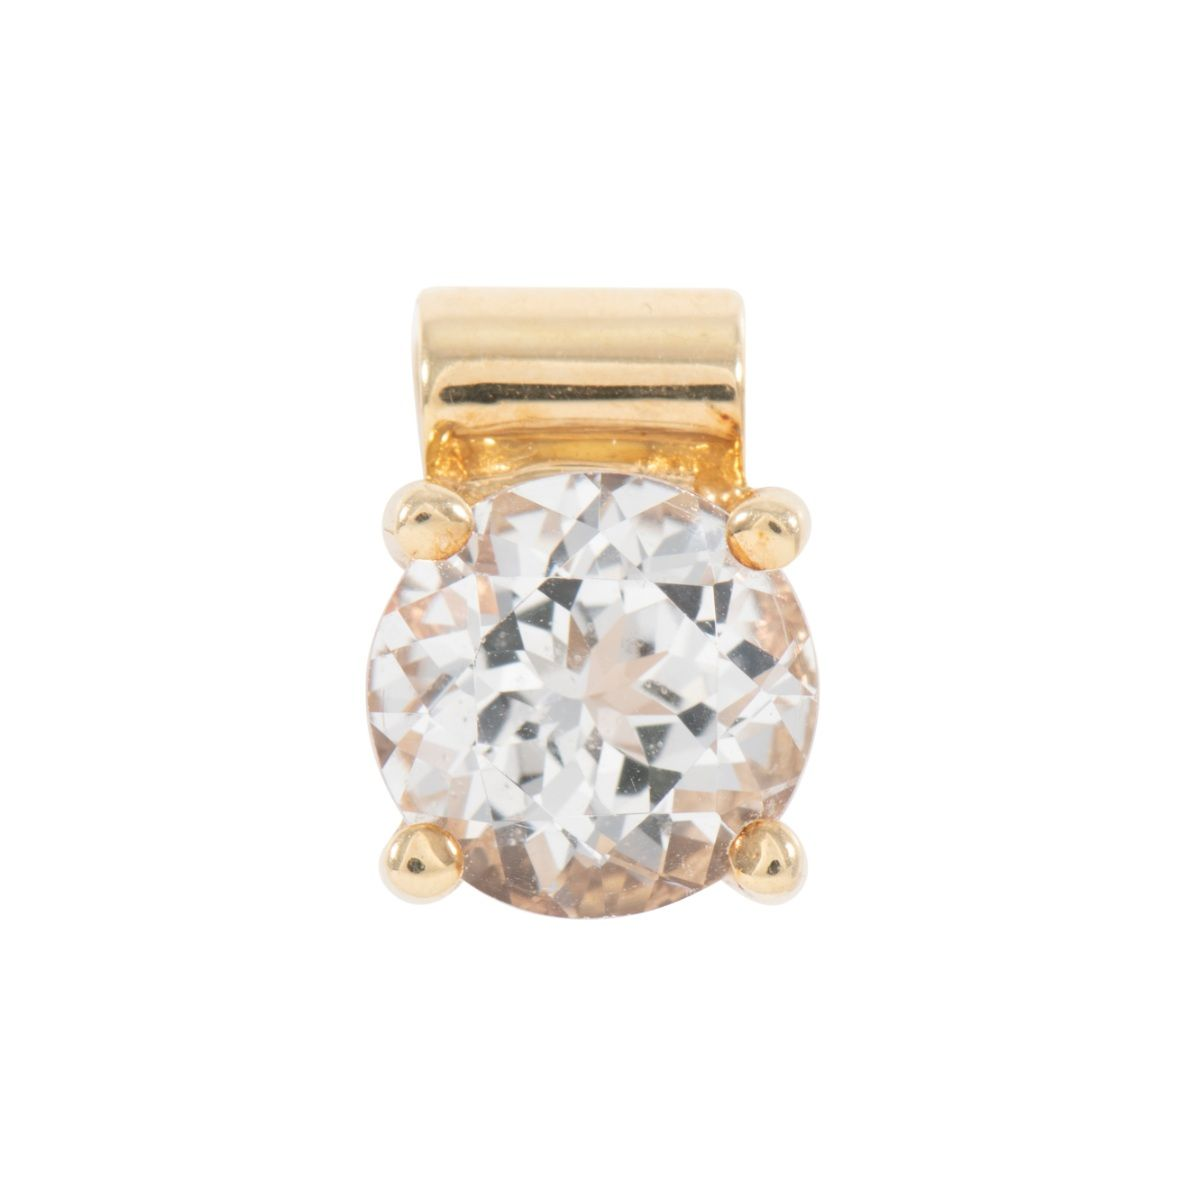 14ct Yellow Gold Topaz Solitaire Pendant Ladies 14mm